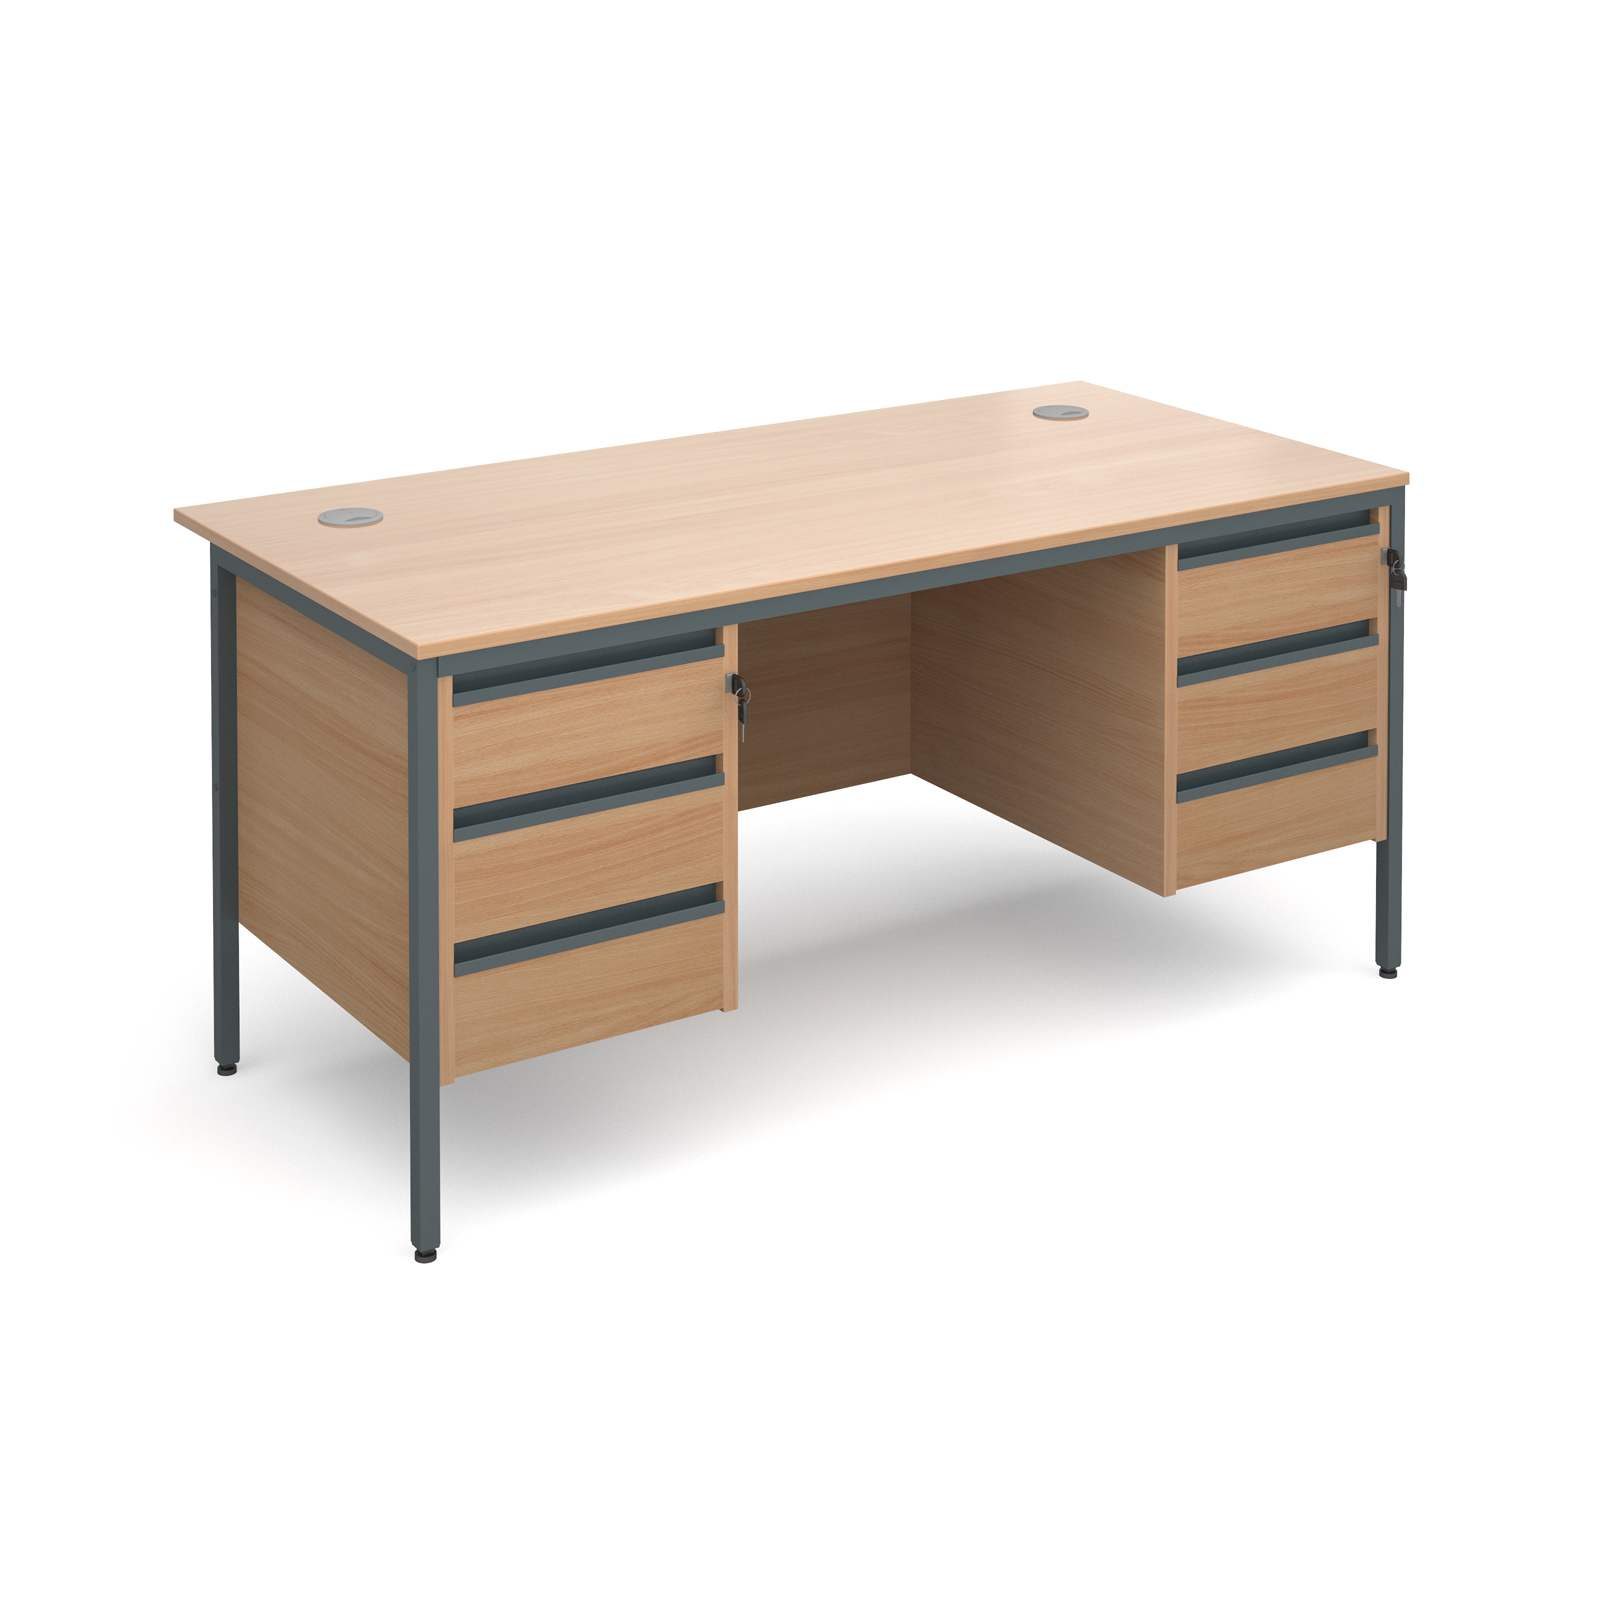 Maestro H frame straight desk with 3 and 3 drawer pedestals 1532mm - beech